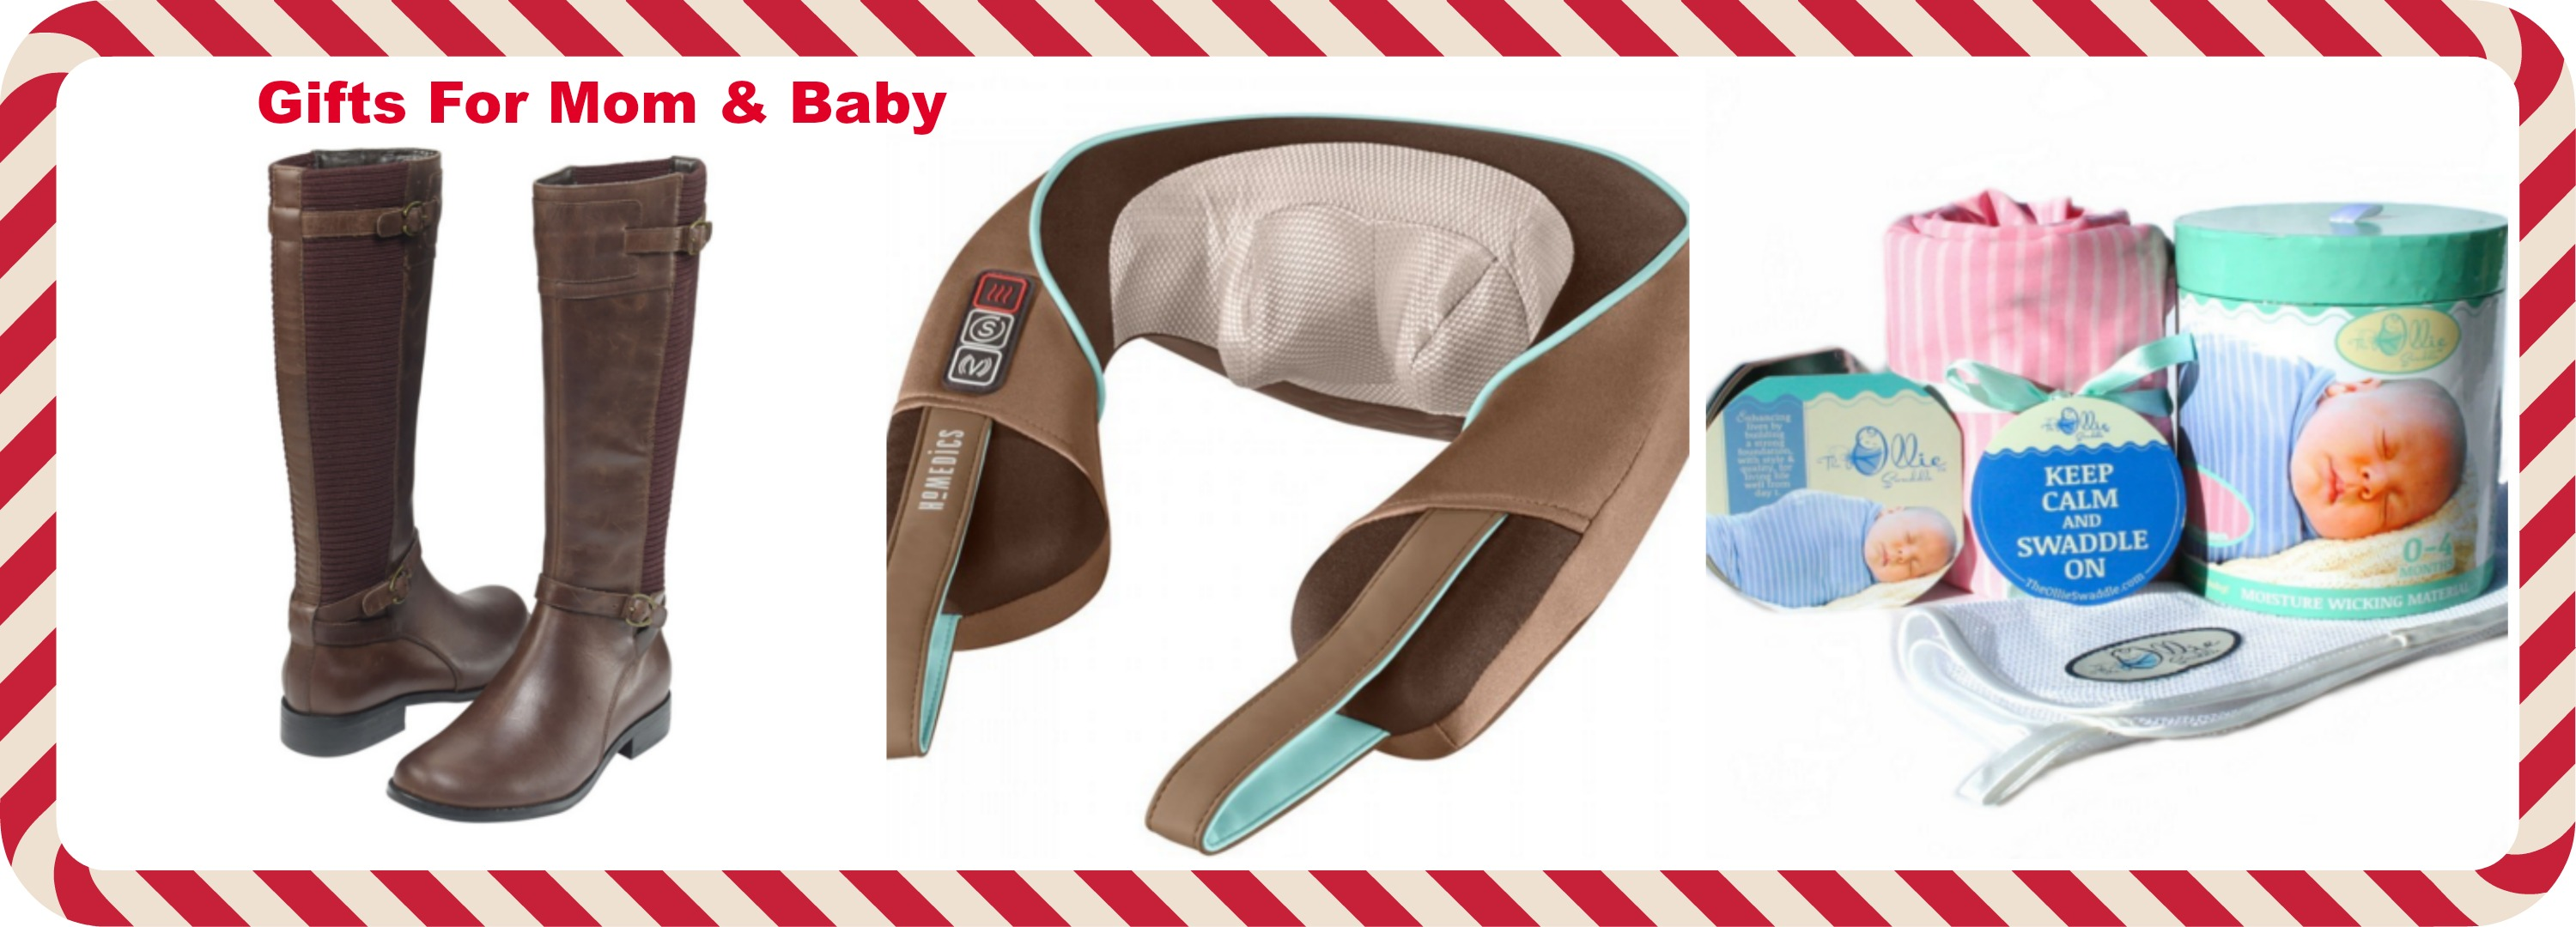 great gifts for mom and baby